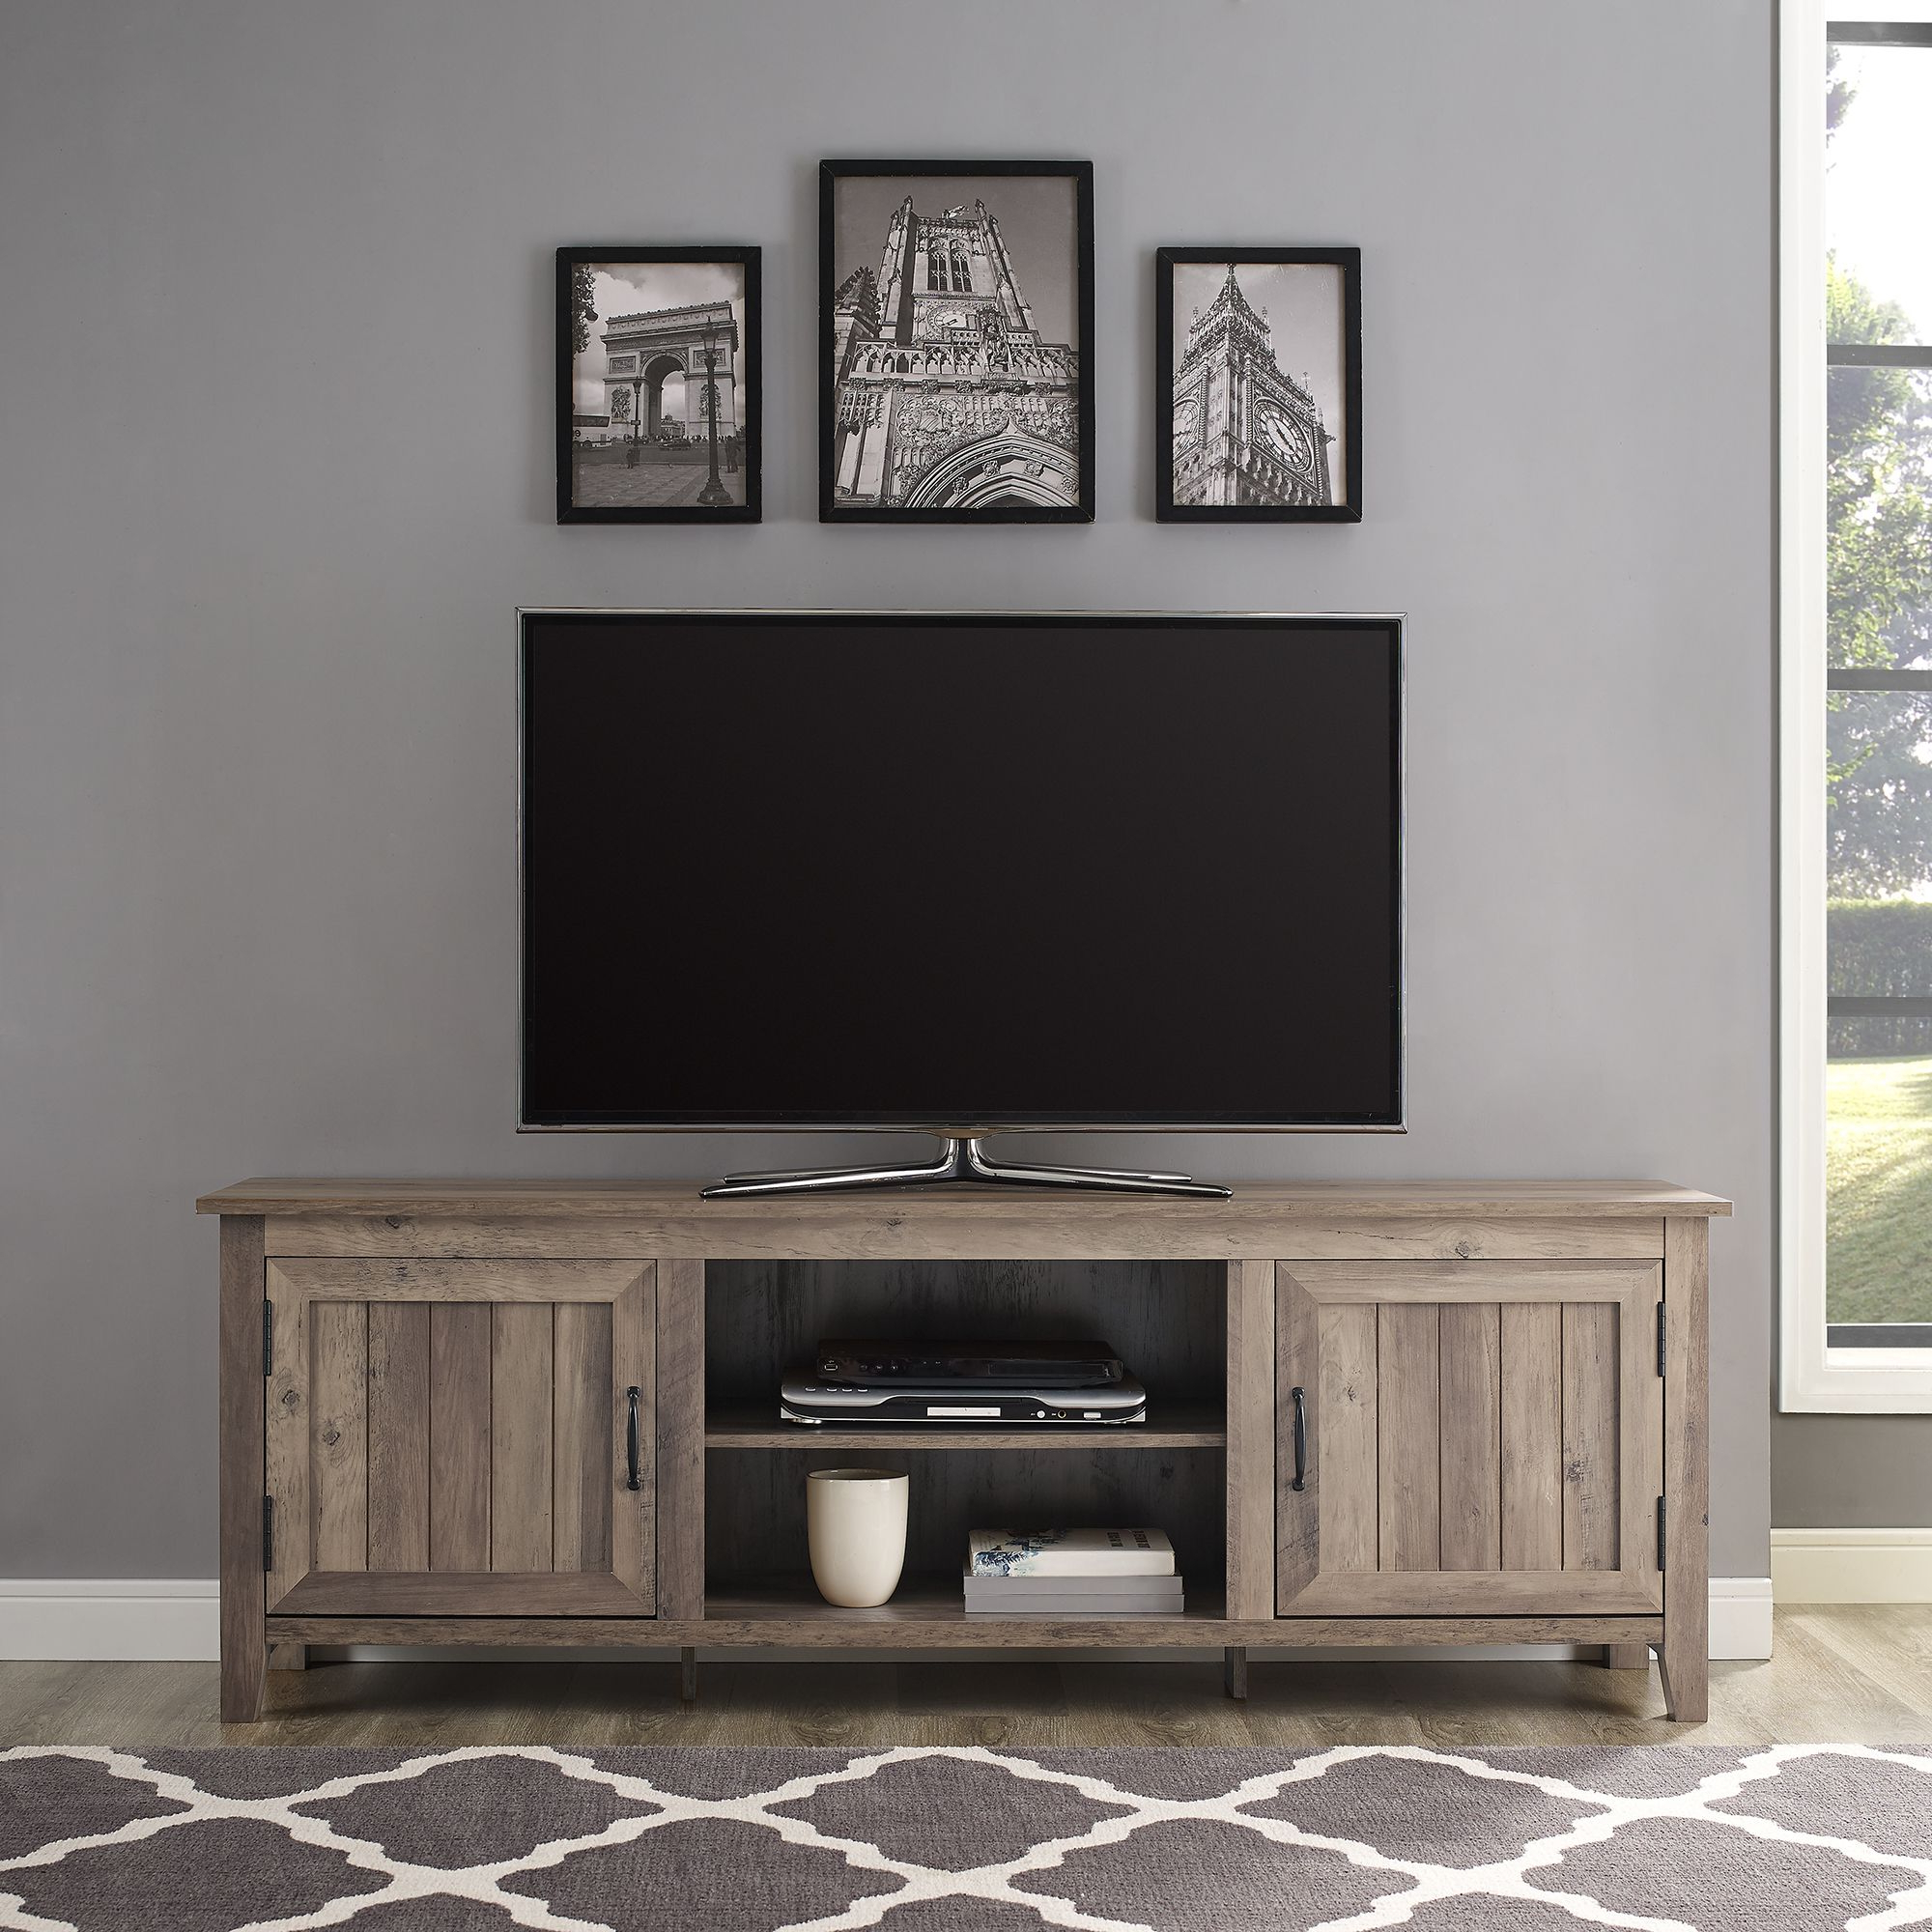 Woven Paths Barn Door Tv Stands In Multiple Finishes Regarding Well Known Woven Paths Farmhouse Grooved Door Tv Stand For Tvs Up To (View 4 of 10)